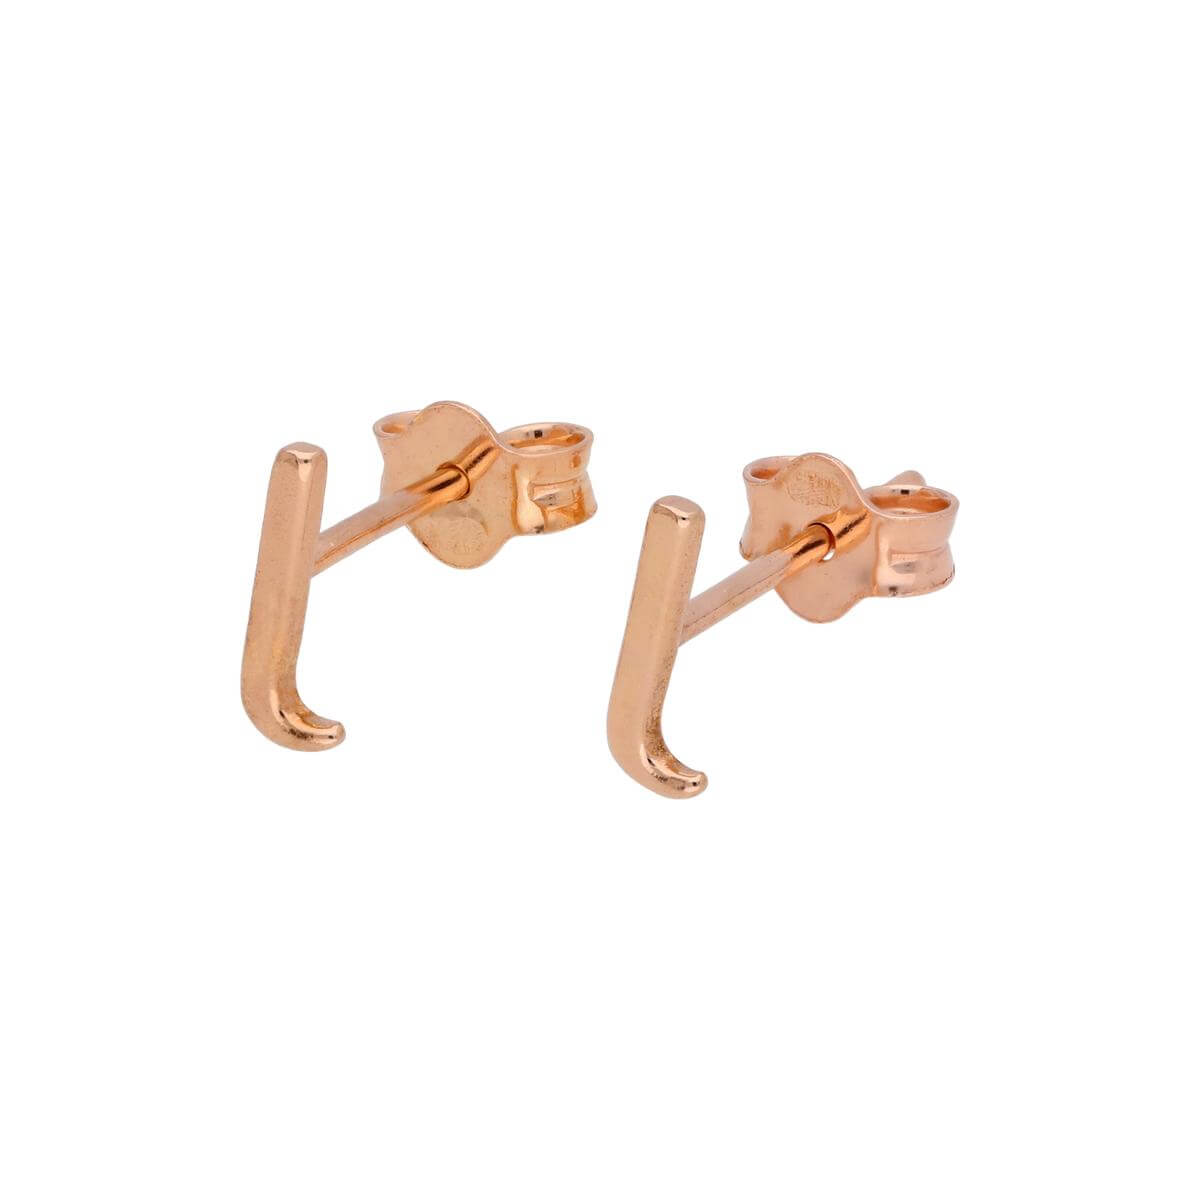 Rose Gold Plated Sterling Silver Letter L Stud Earrings